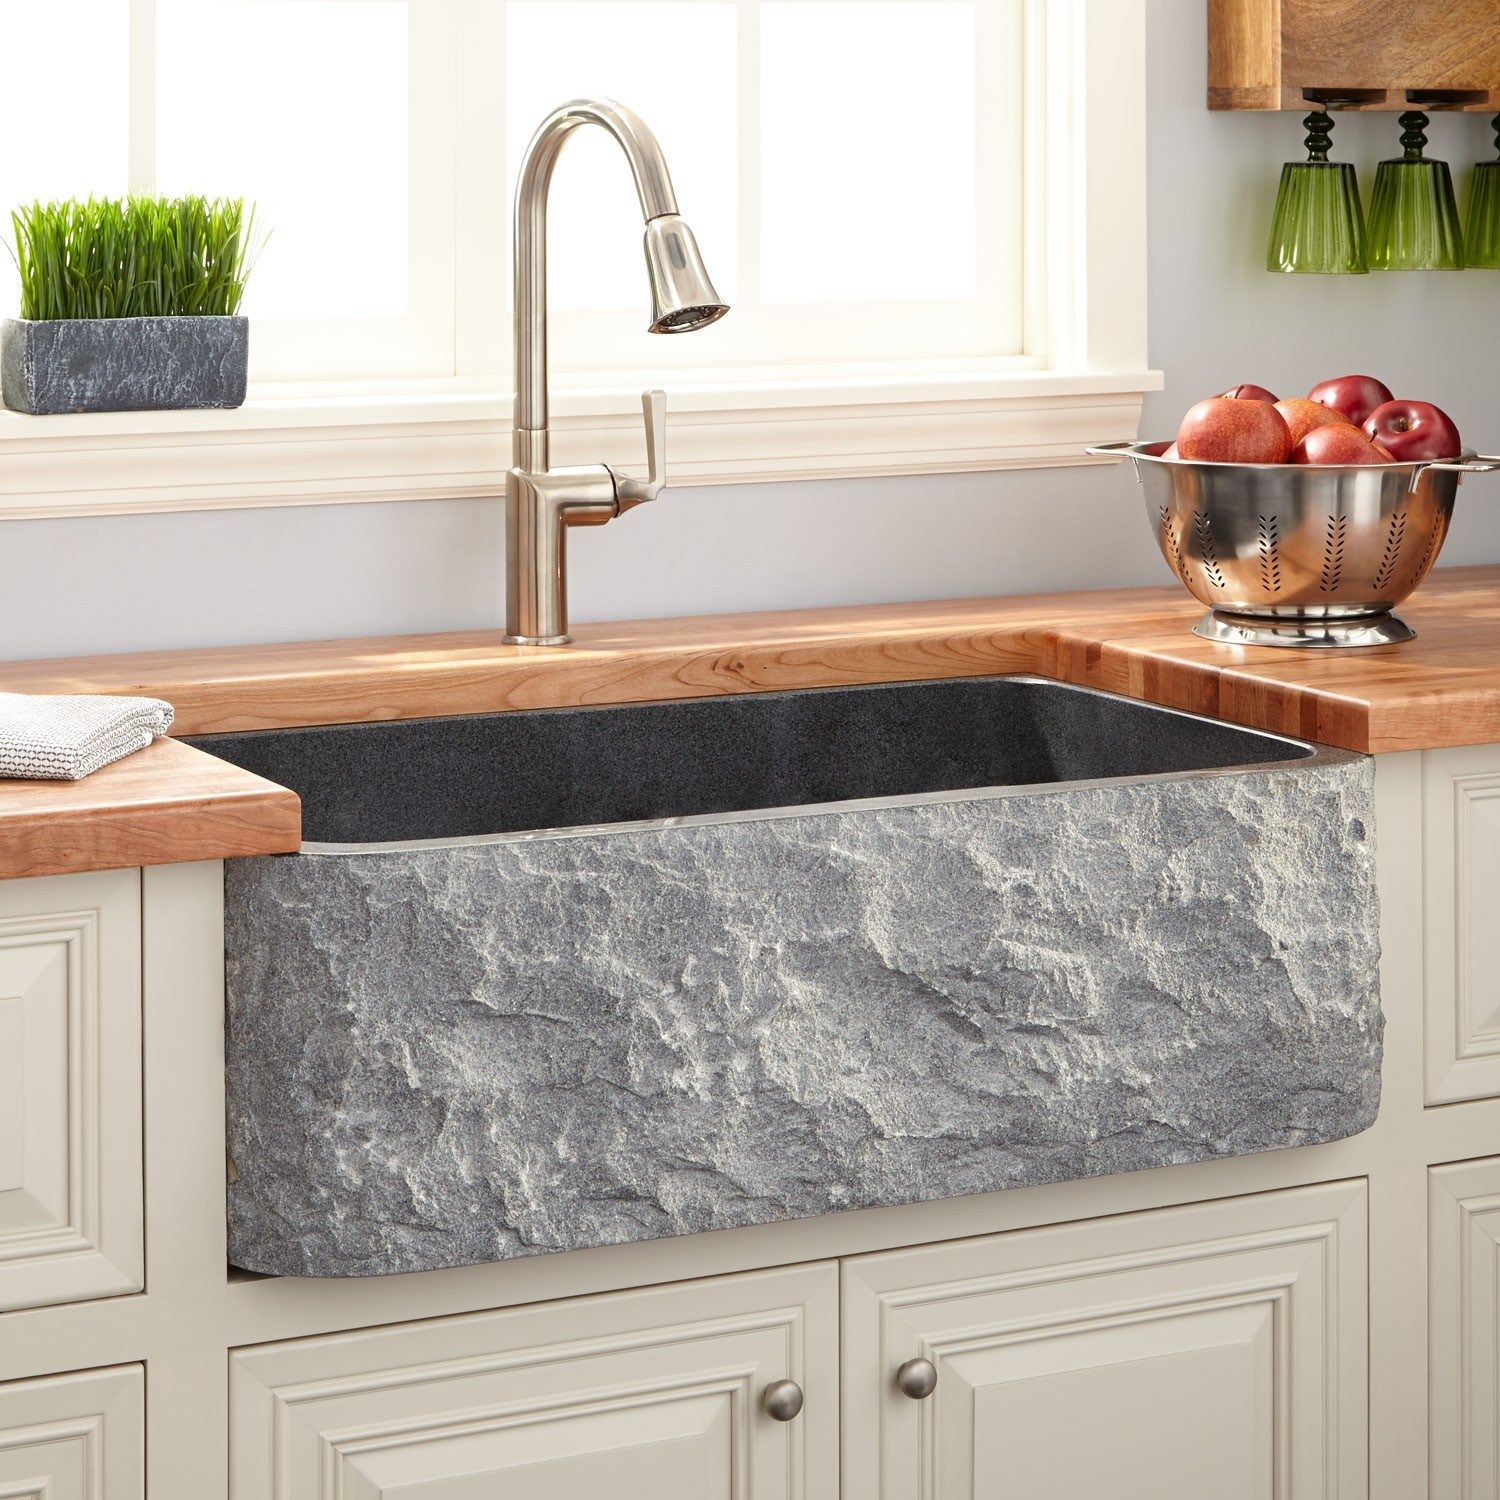 39 Awesome Granite Composite Farmhouse Sink